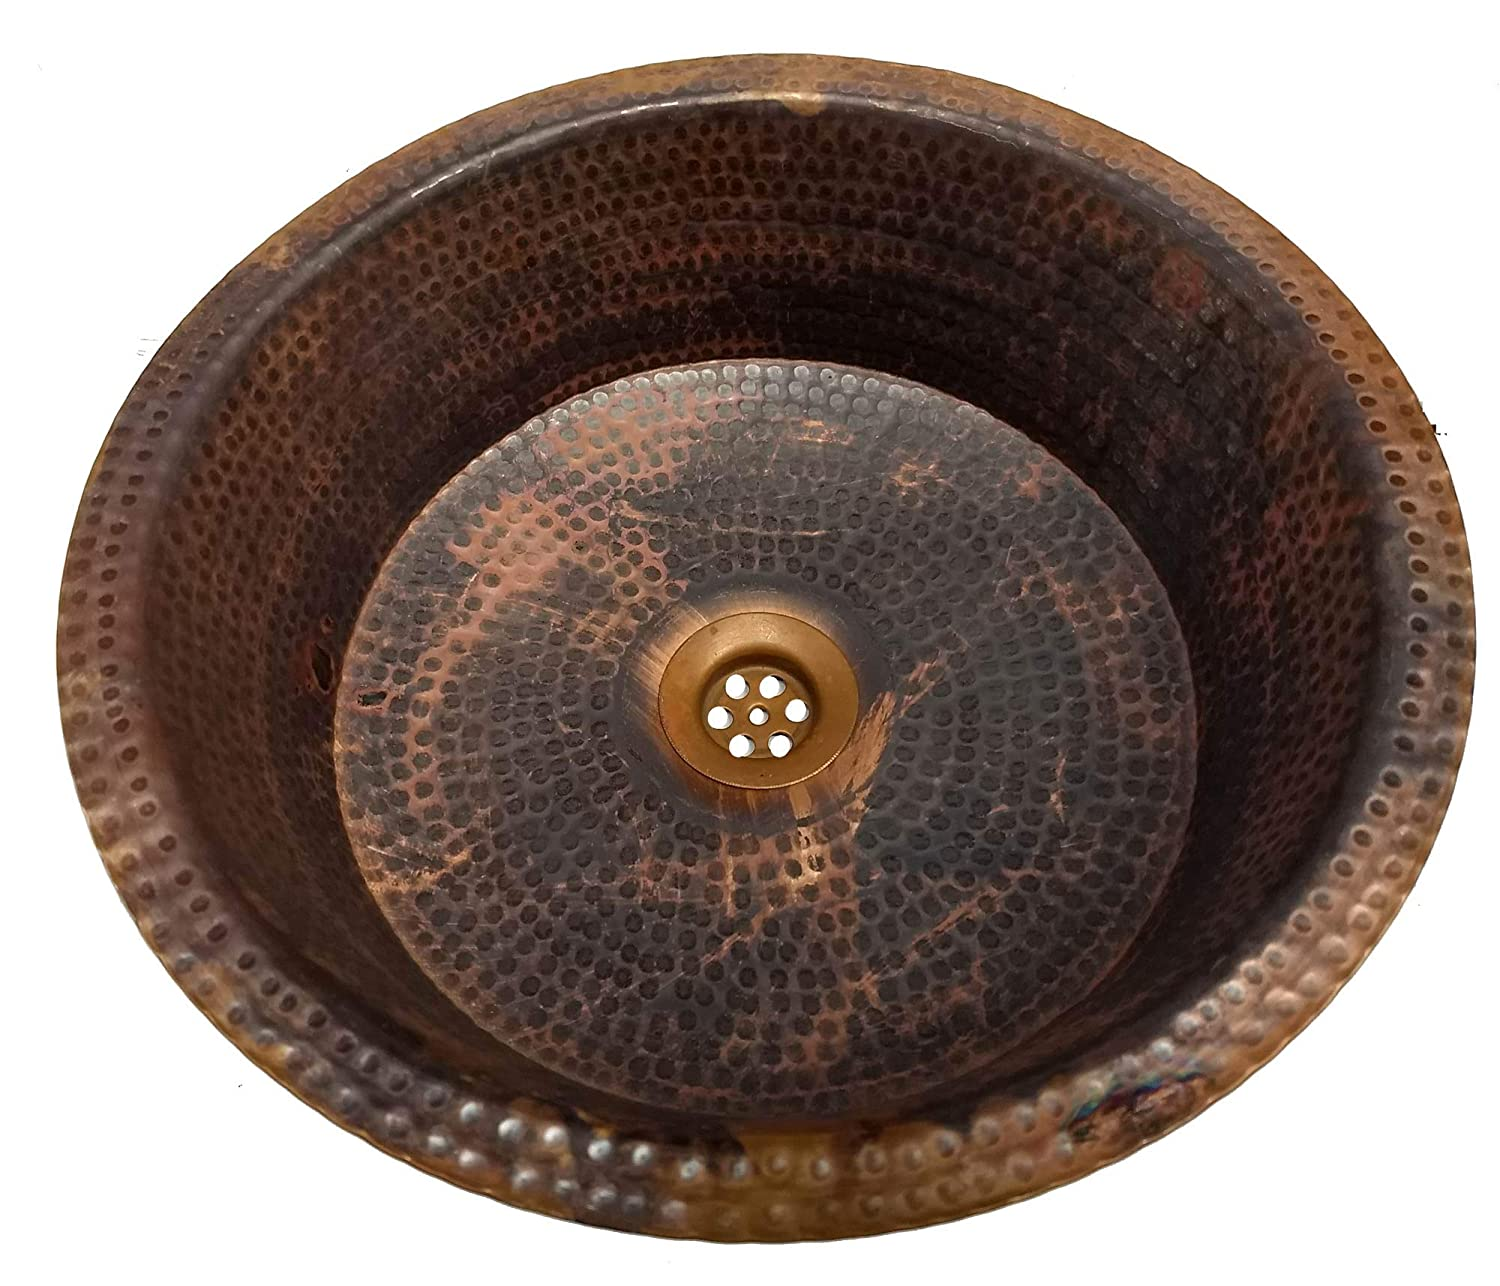 Egypt gift shops Artisan Hand Hammered Crafted Vessel Fire Patina Natural Pure Copper Bath Pan Panning Bathroom Vessel Sink Home Remodel